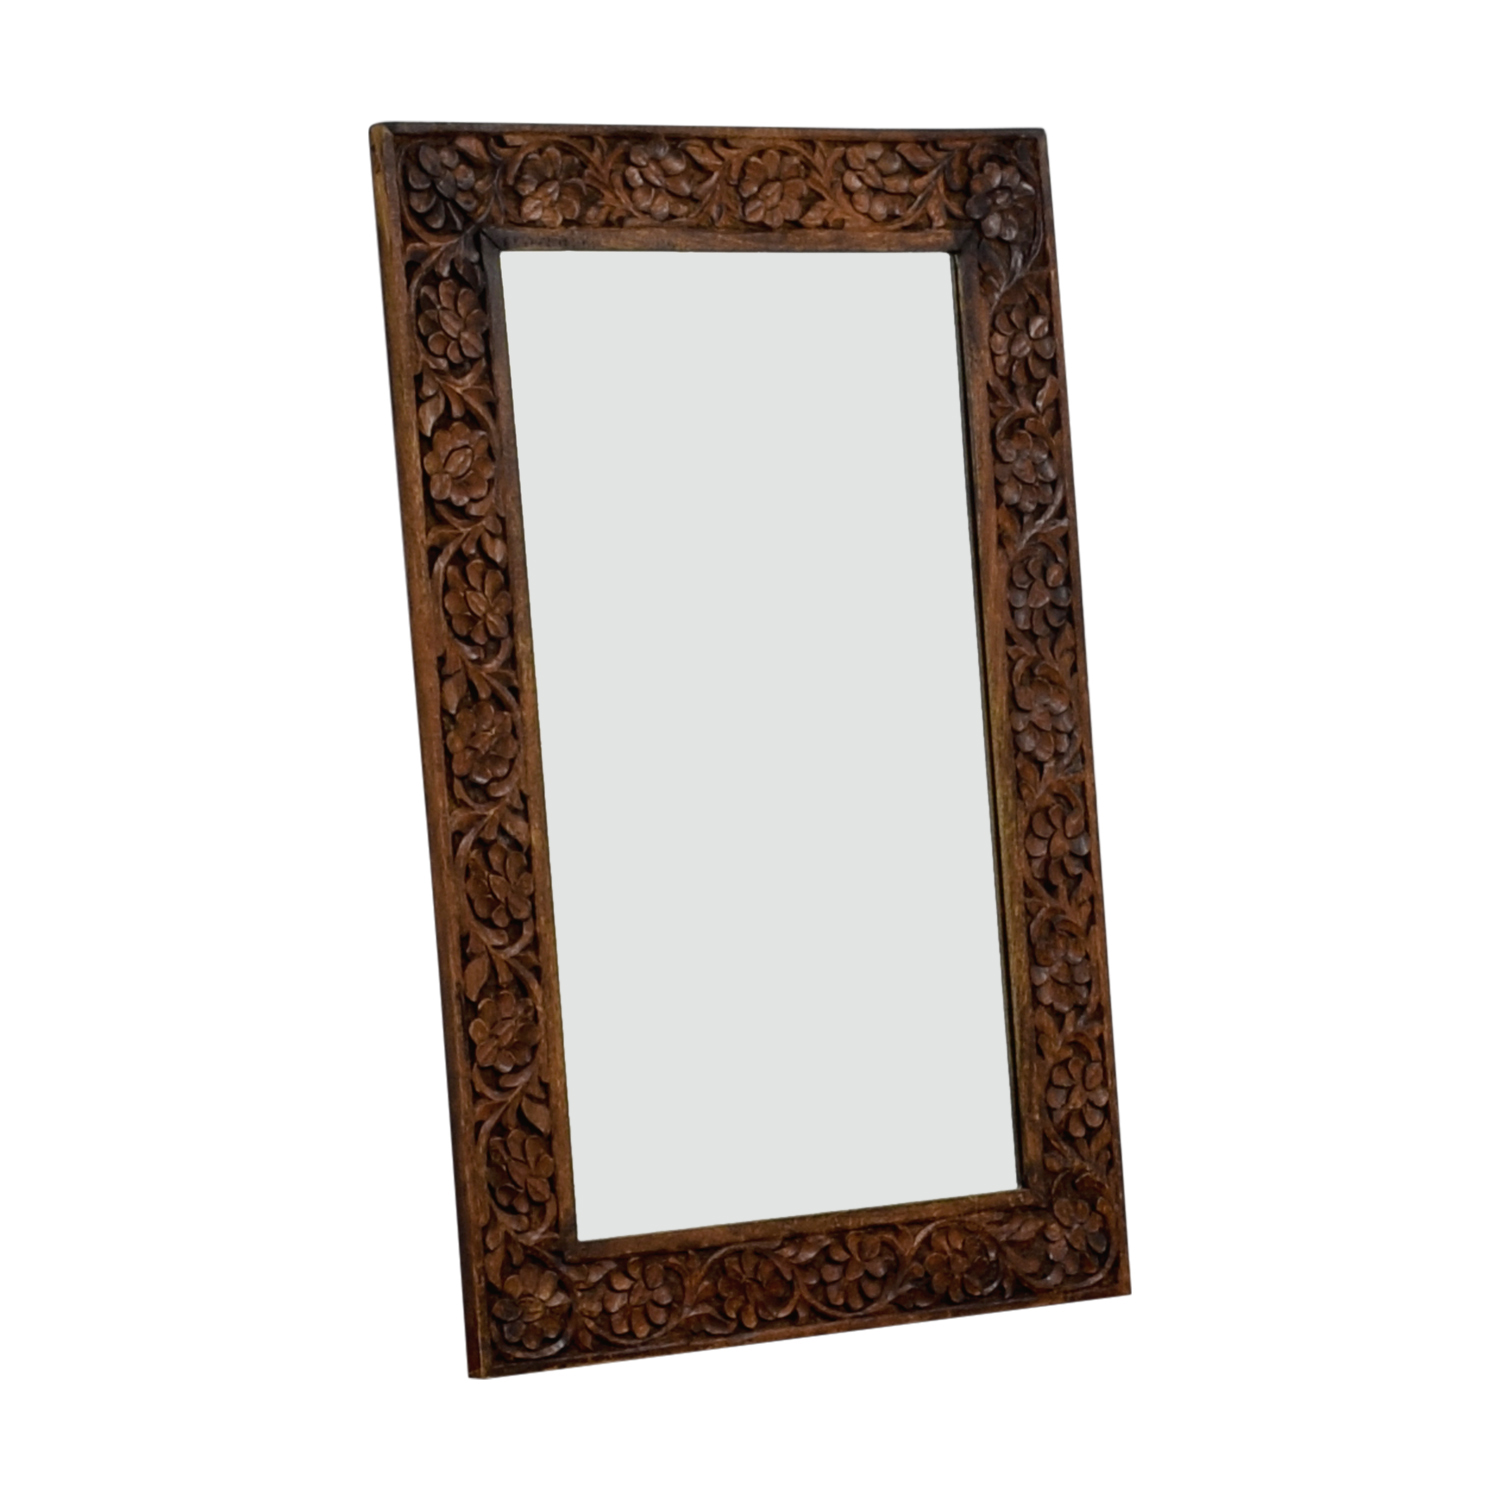 Floral Carved Wooden Mirror sale